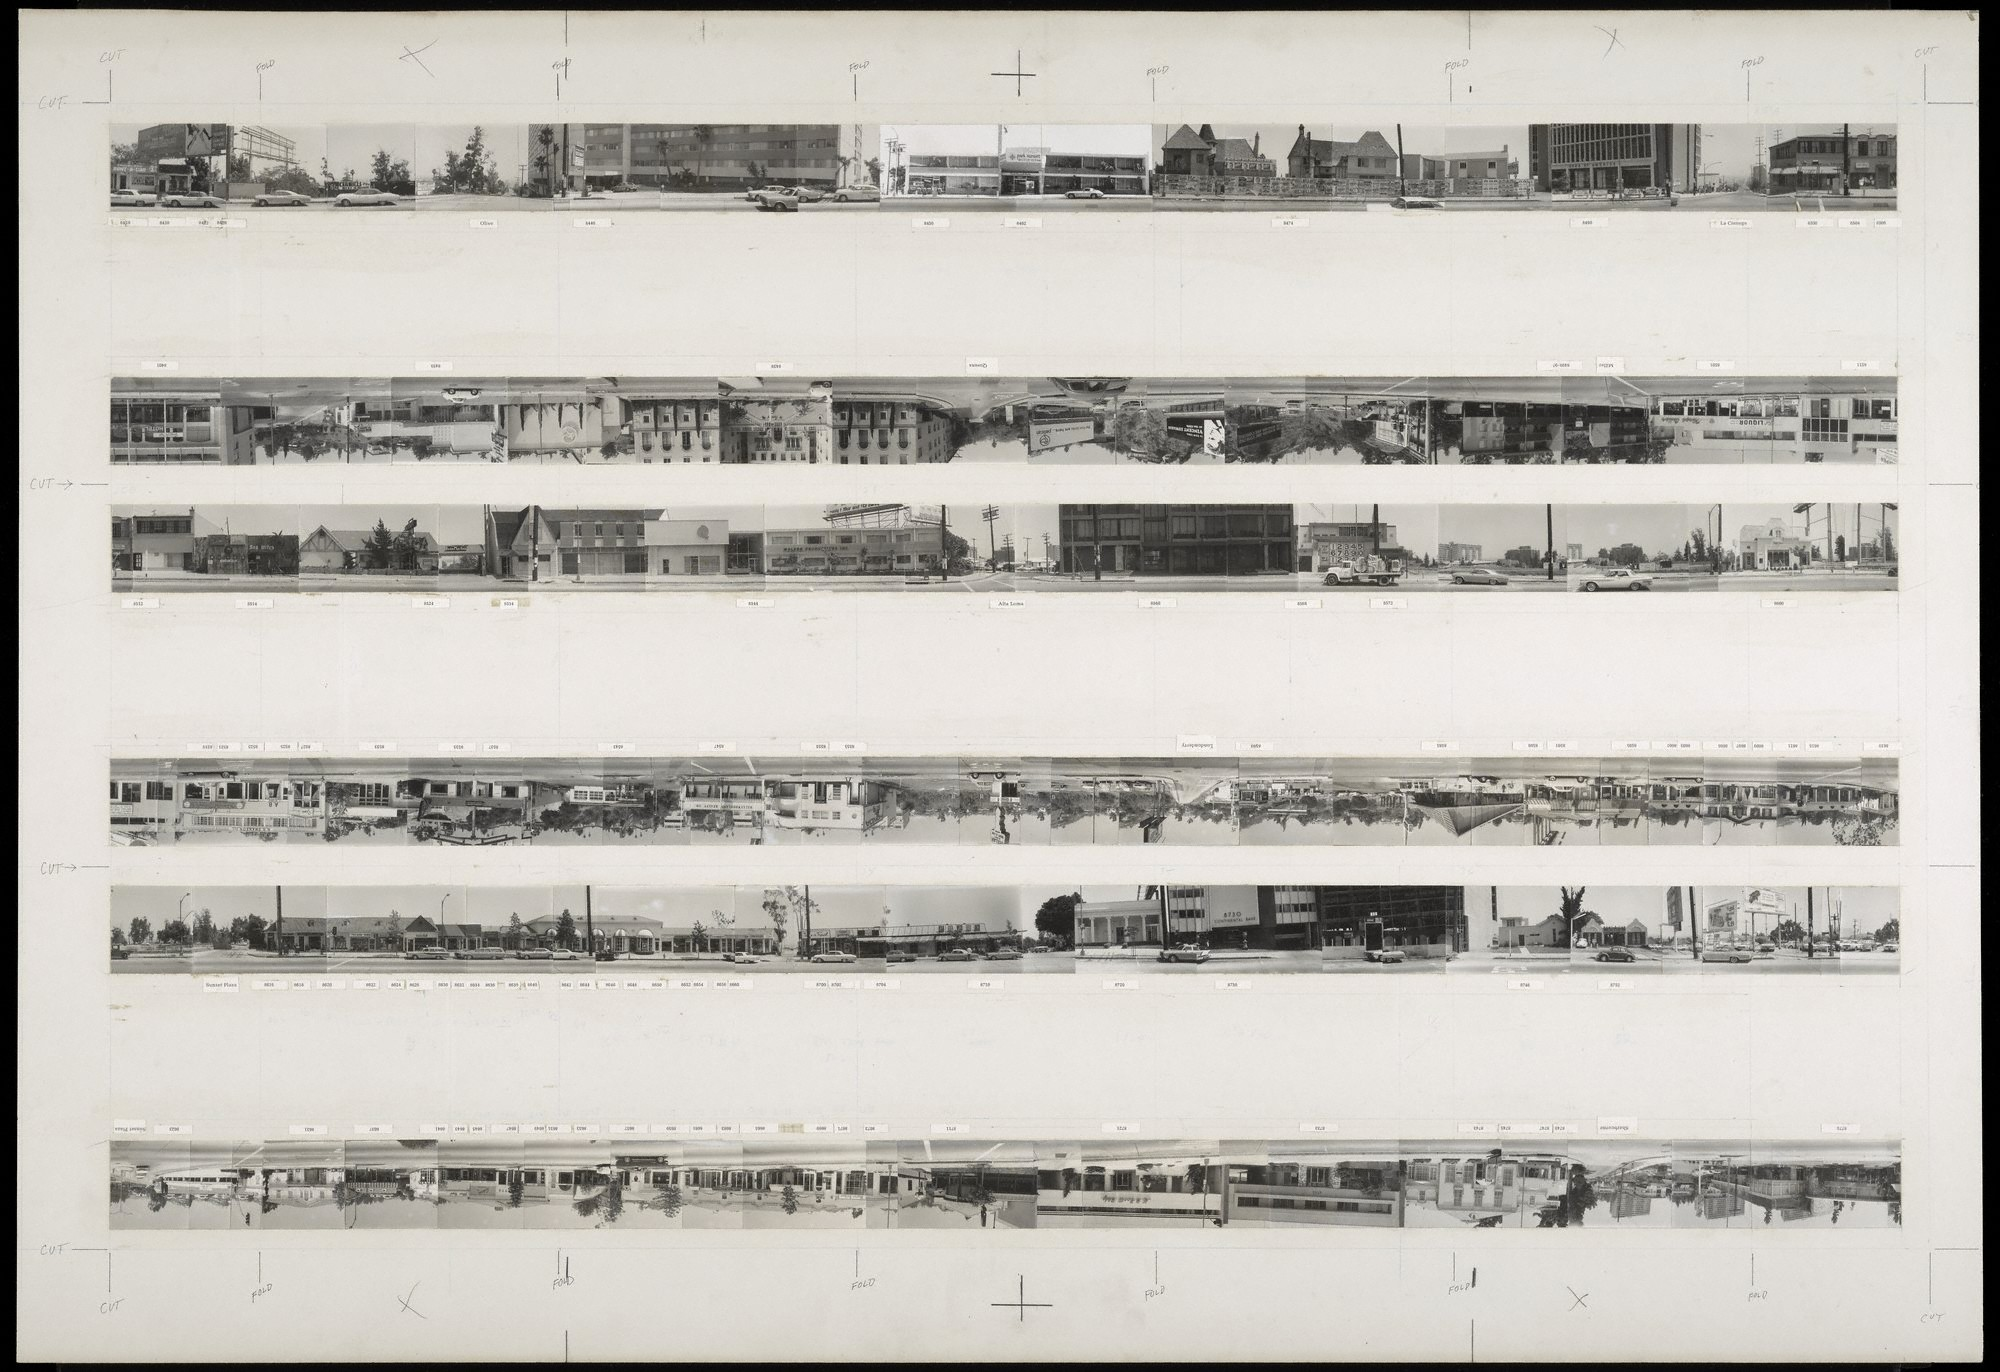 © Edward Ruscha-The Getty Research Institute, Los Angeles (2012.M.1) / Edward Ruscha photographs of Los Angeles streets and related documentation: Sunset Boulevard and Hollywood Boulevard.